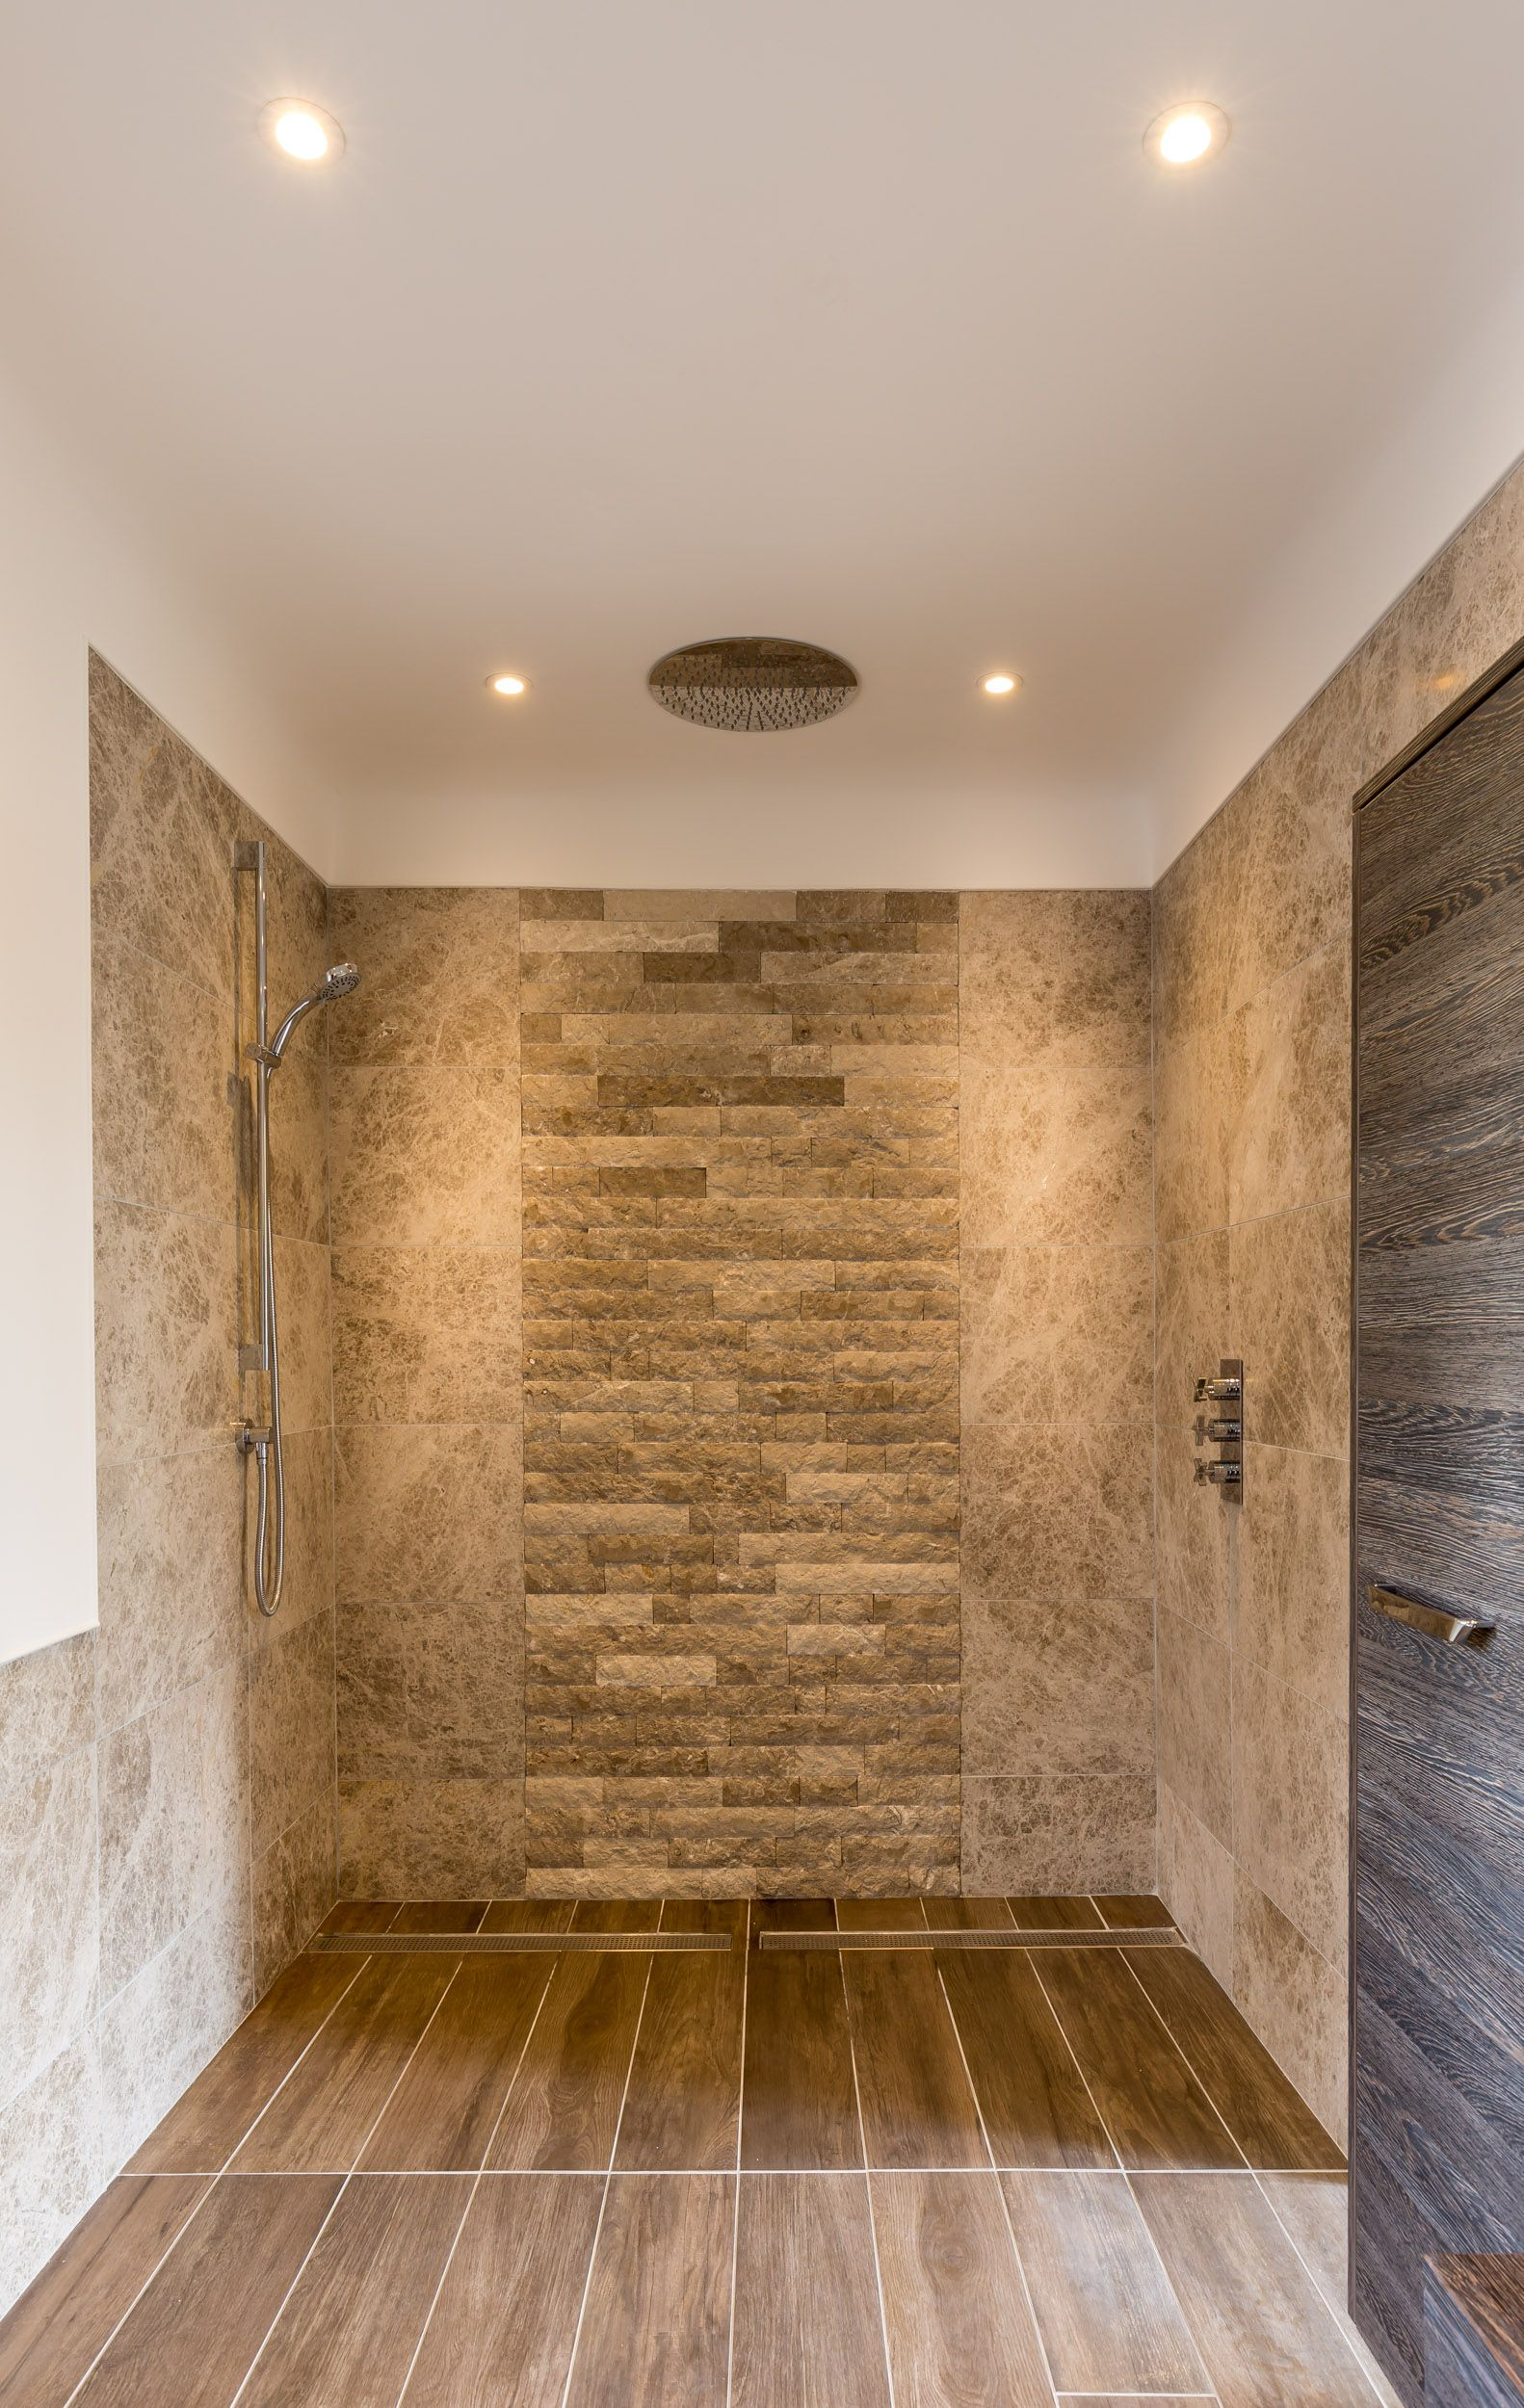 Finished Interior Designs In Kerala: Large Contemporary Walk In Shower With Feature Rustic